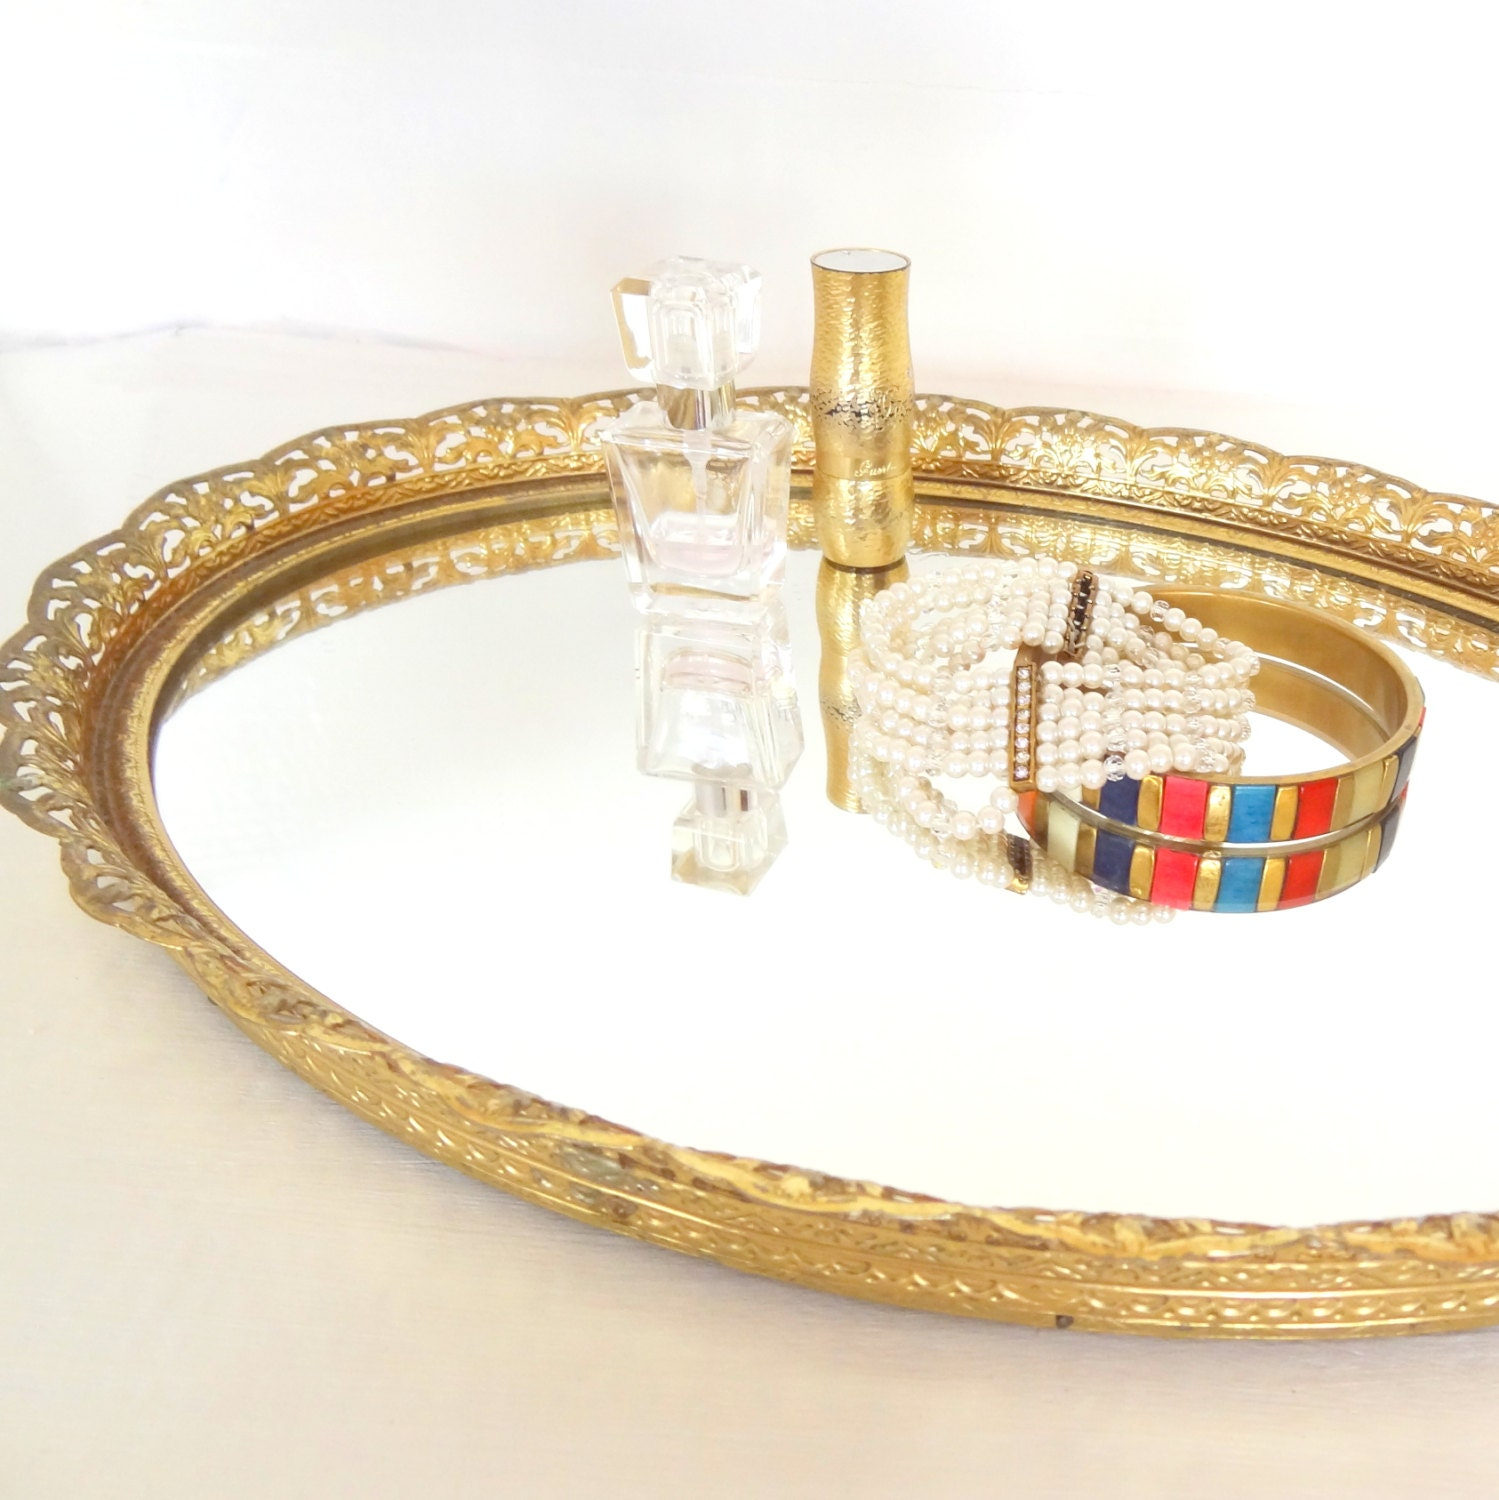 Vintage gold mirrored vanity tray for Mirrored bathroom tray